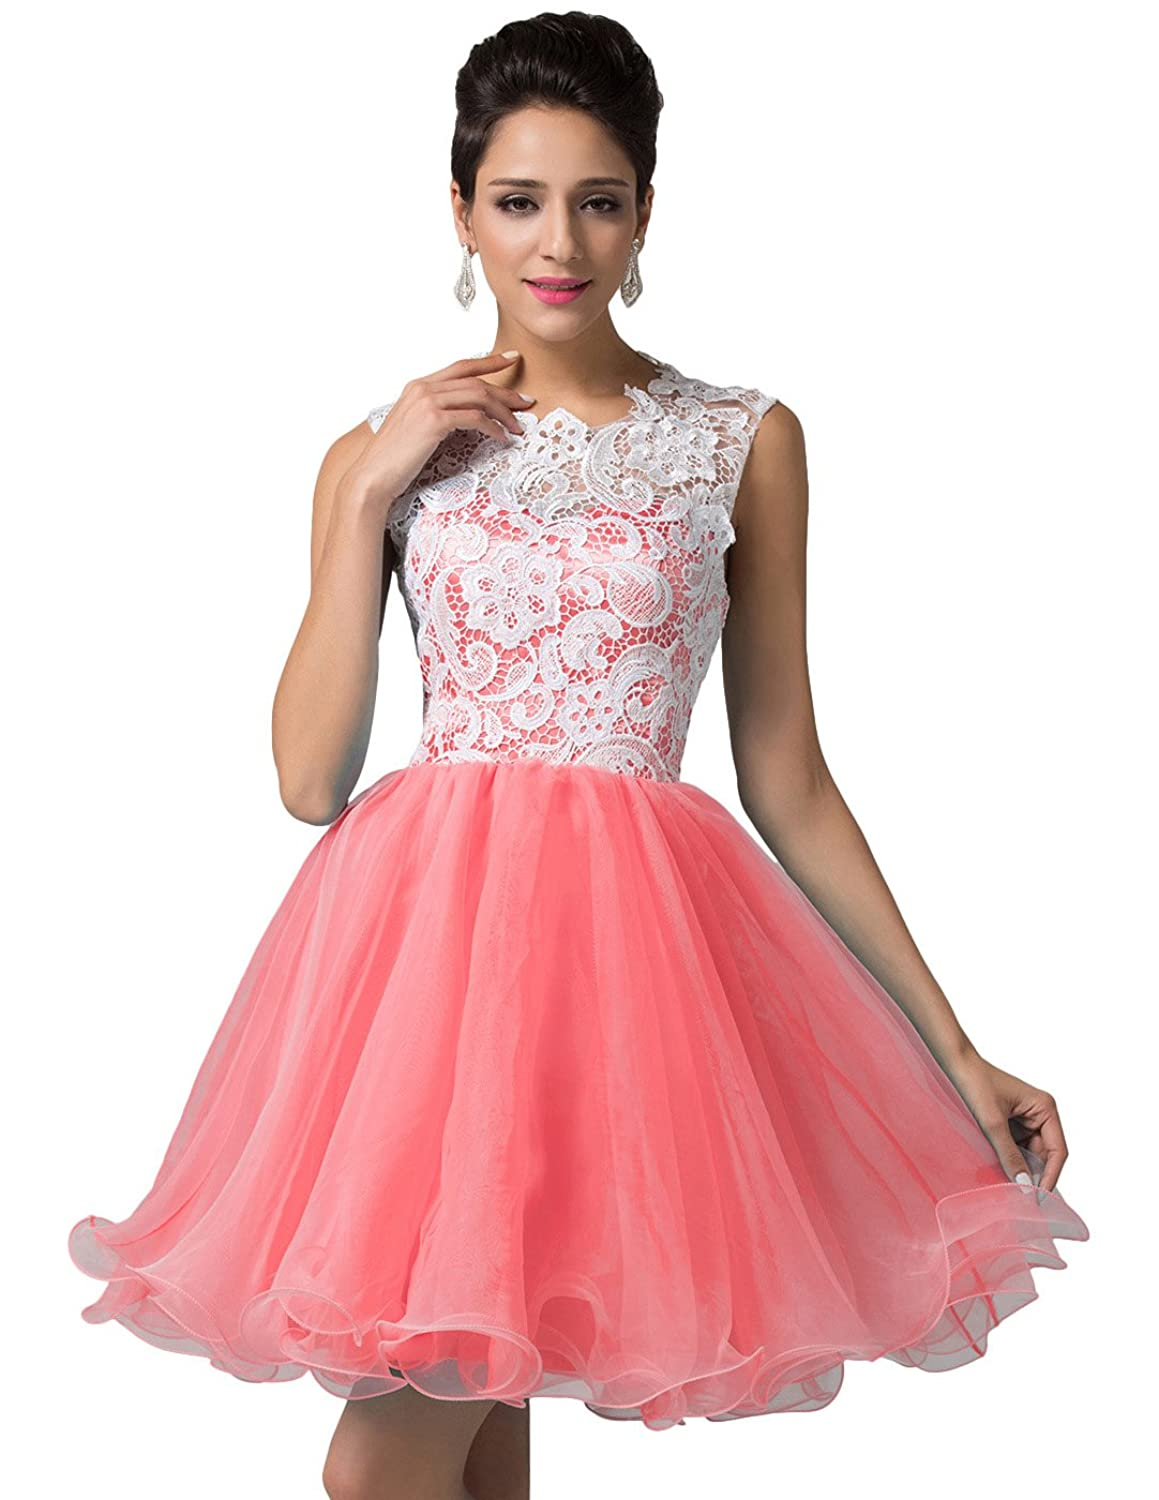 GRACE KARIN Juniors' Lace Bodice Tulle Short Homecoming Dress Cocktail Prom Gown